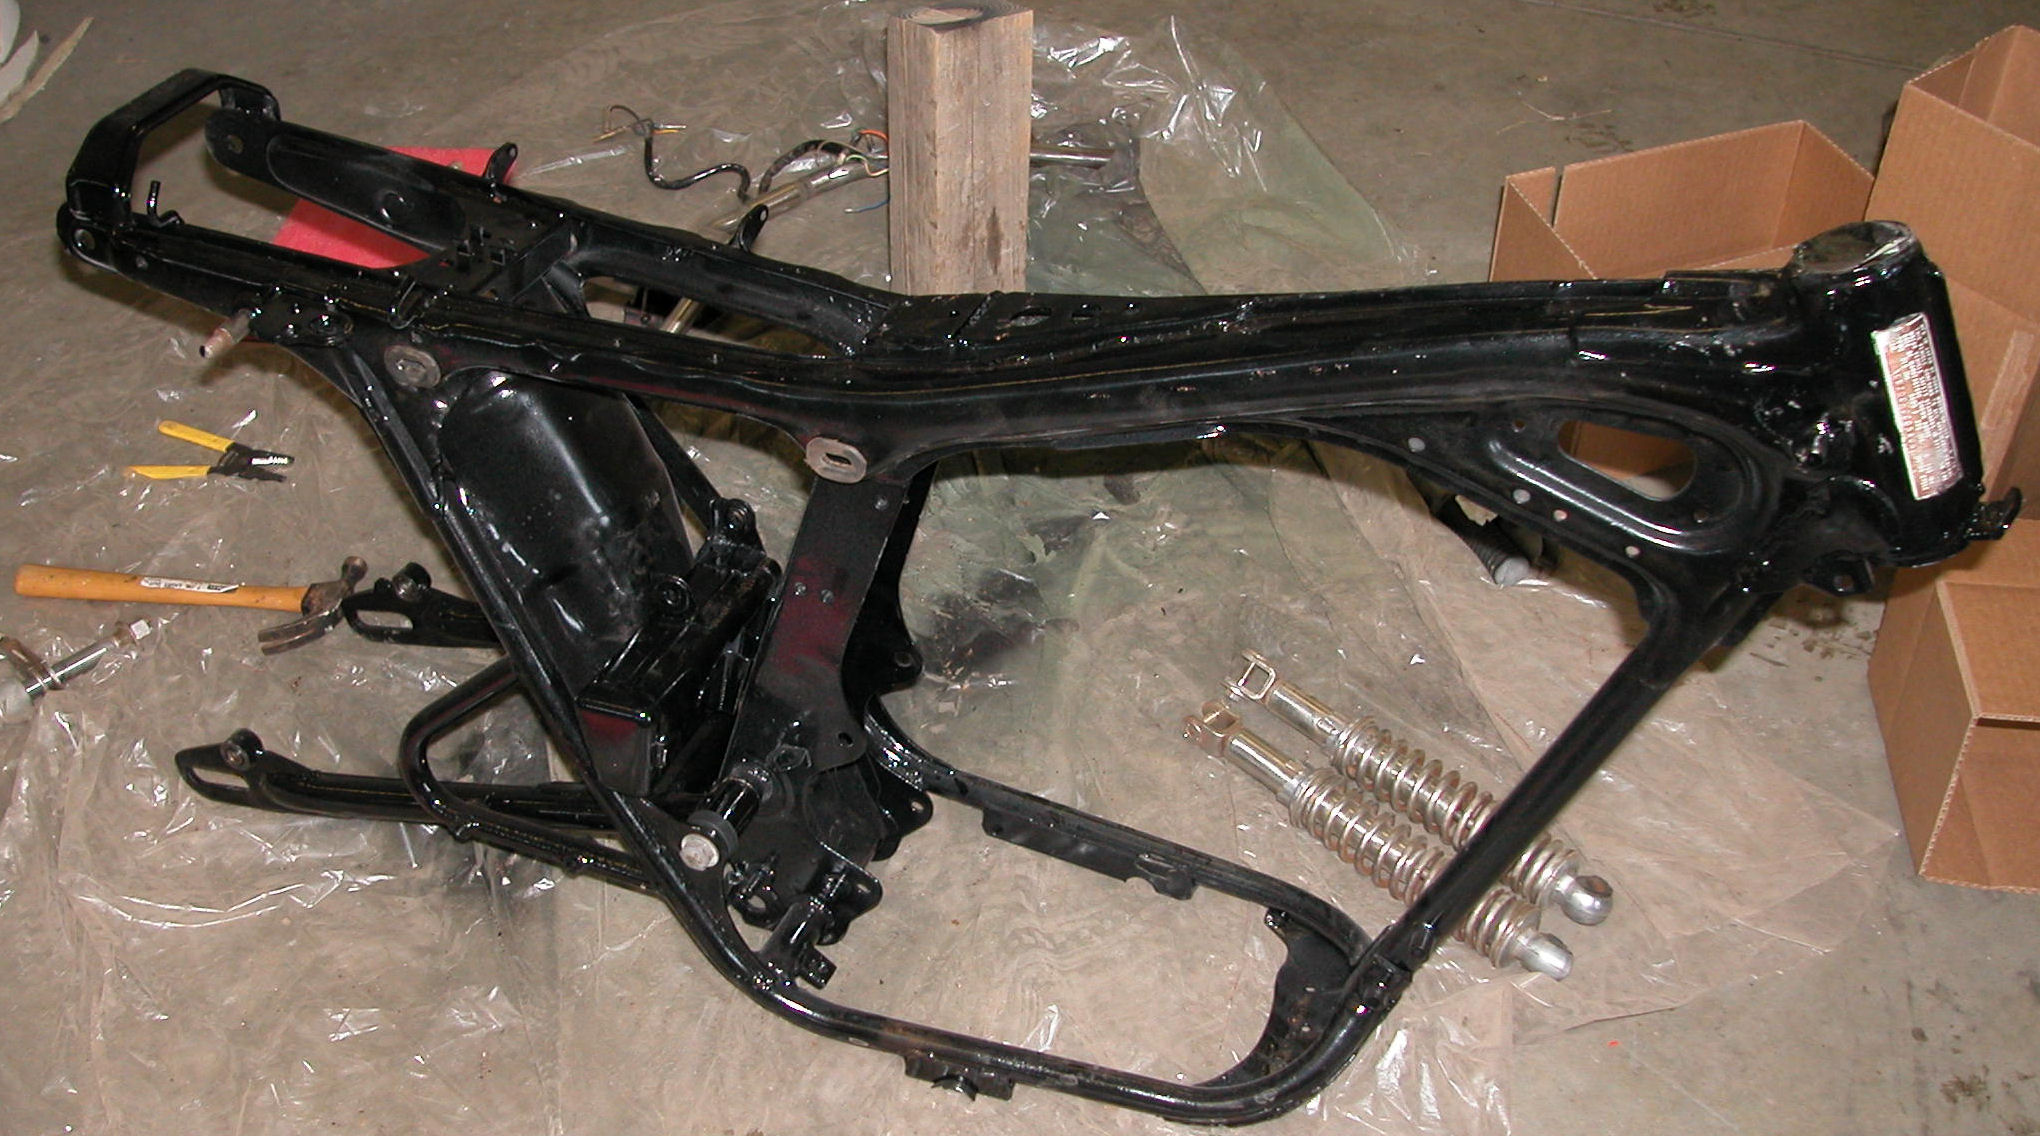 painted frame - Motorcycle Frame Paint